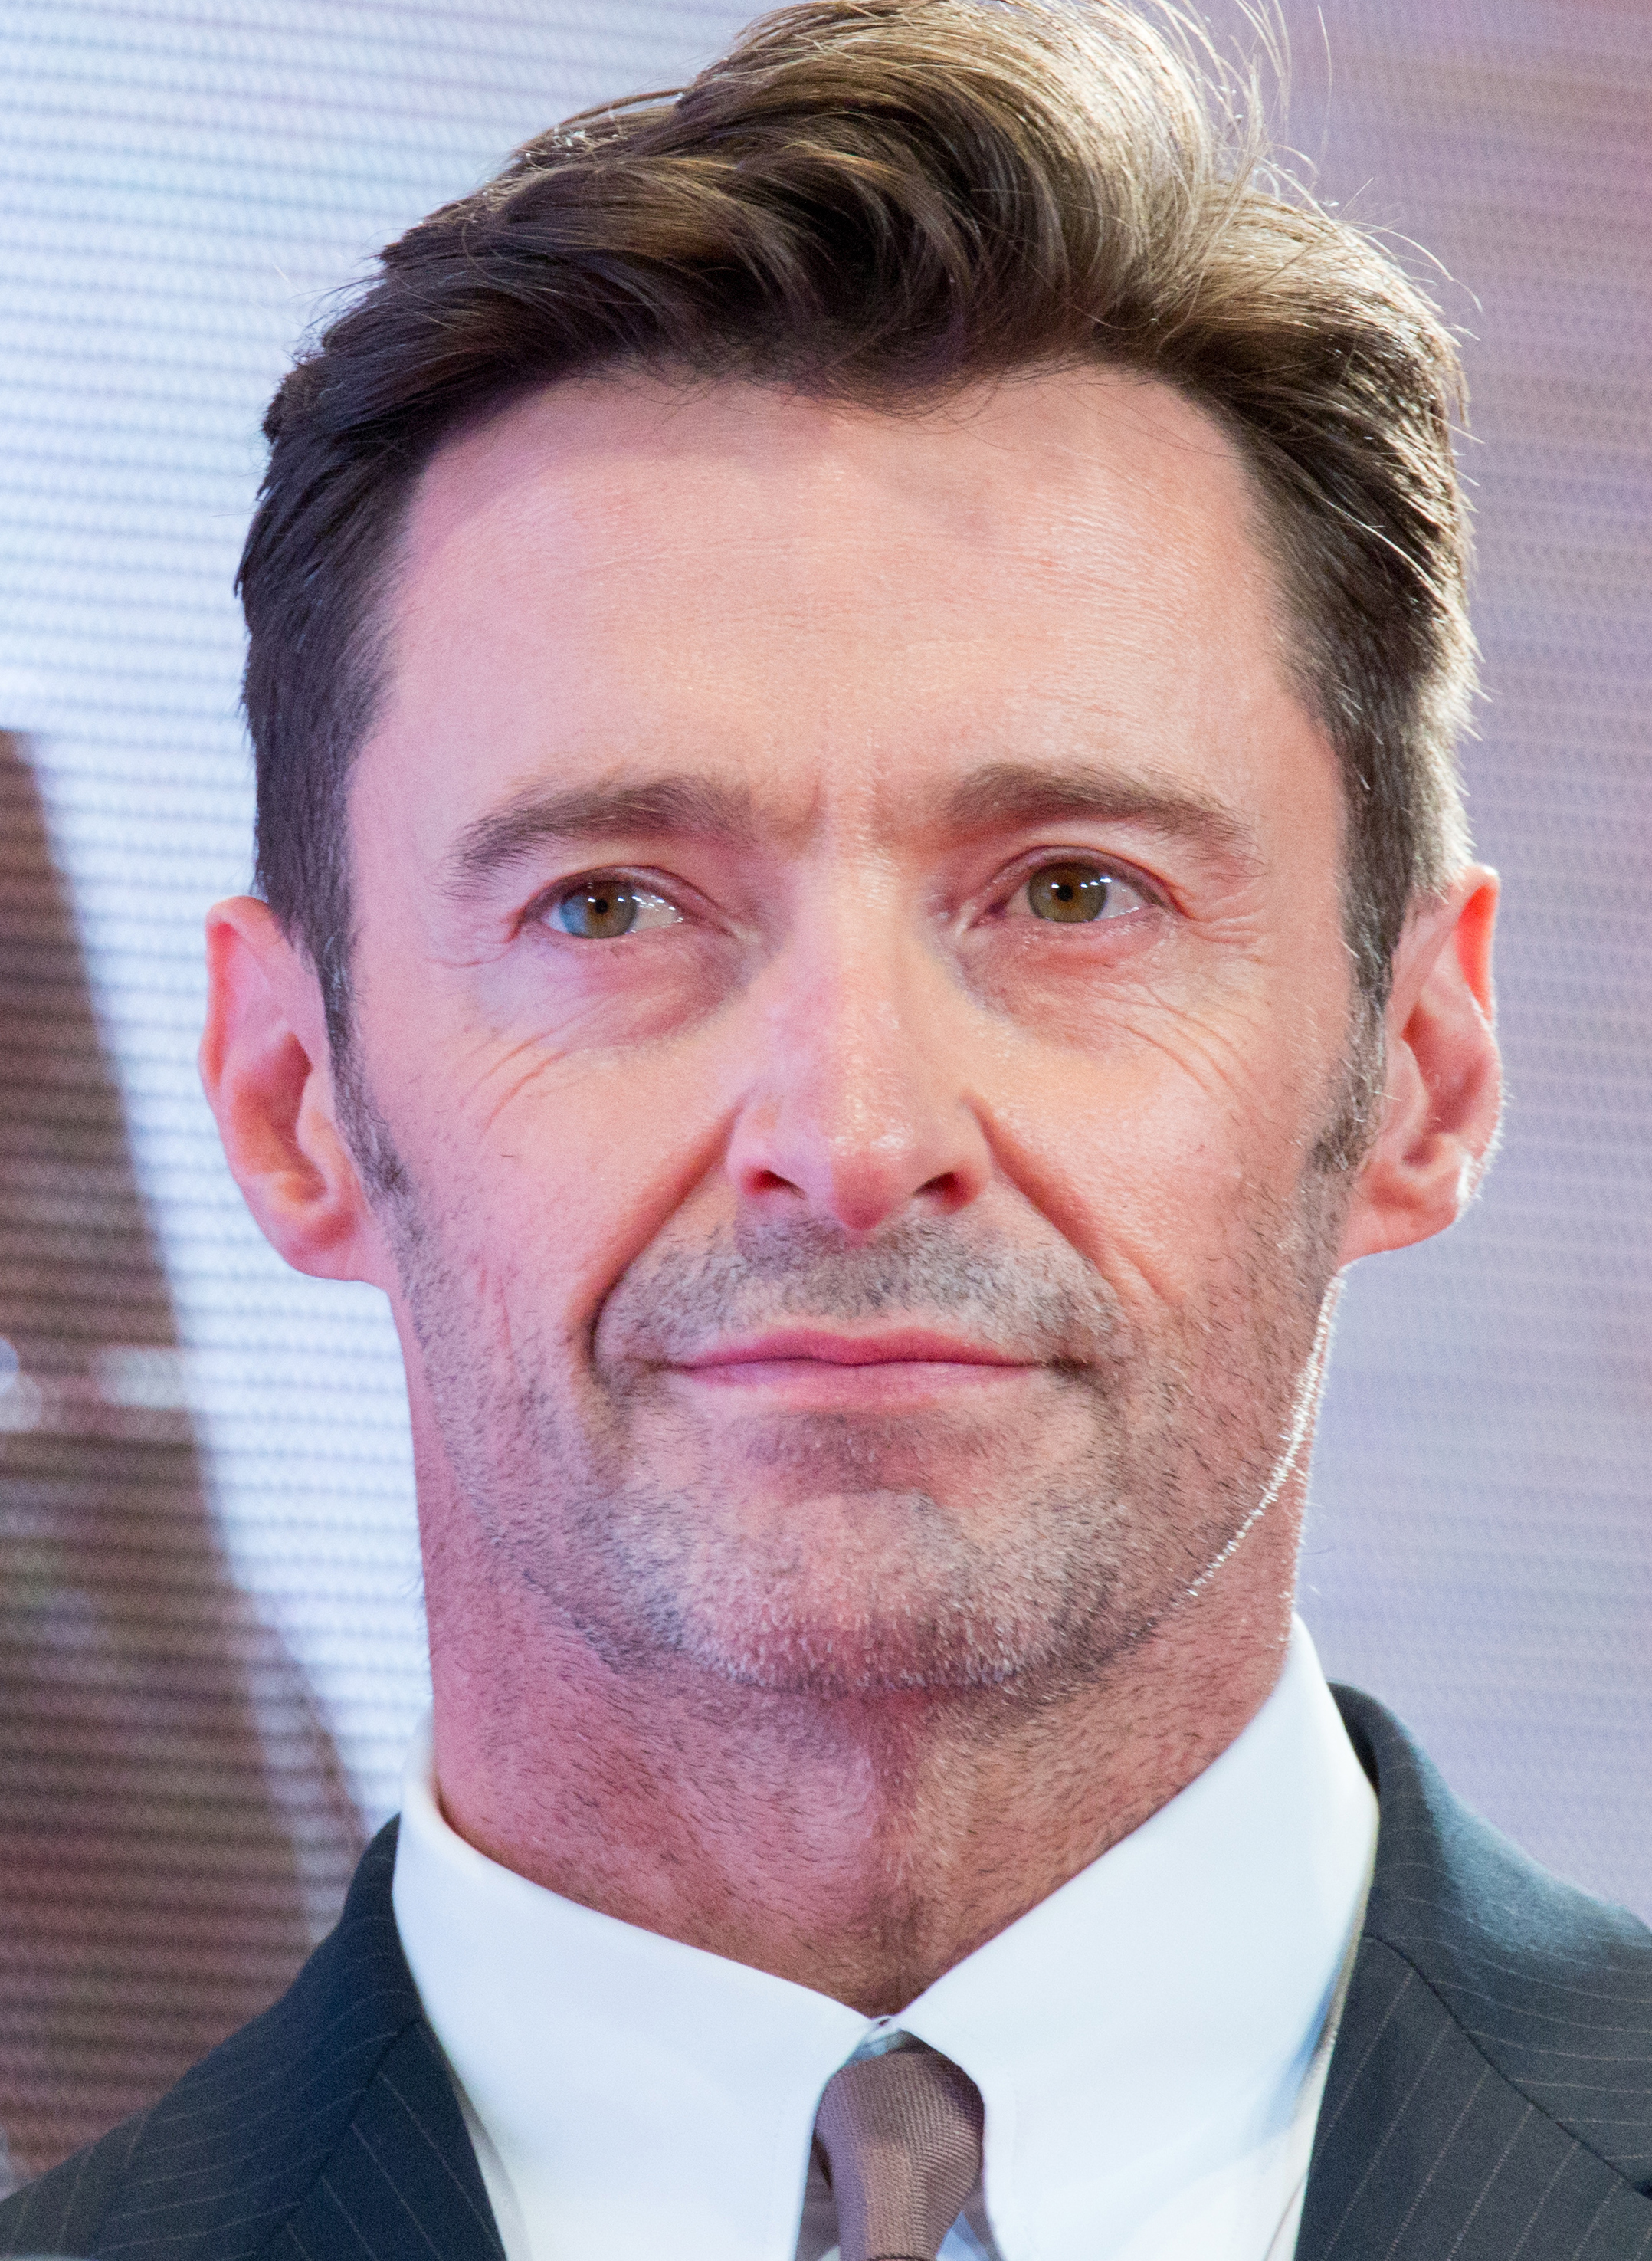 Logan_Japan_Premiere_Red_Carpet-_Hugh_Jackman_(38445328406)_(rotated)